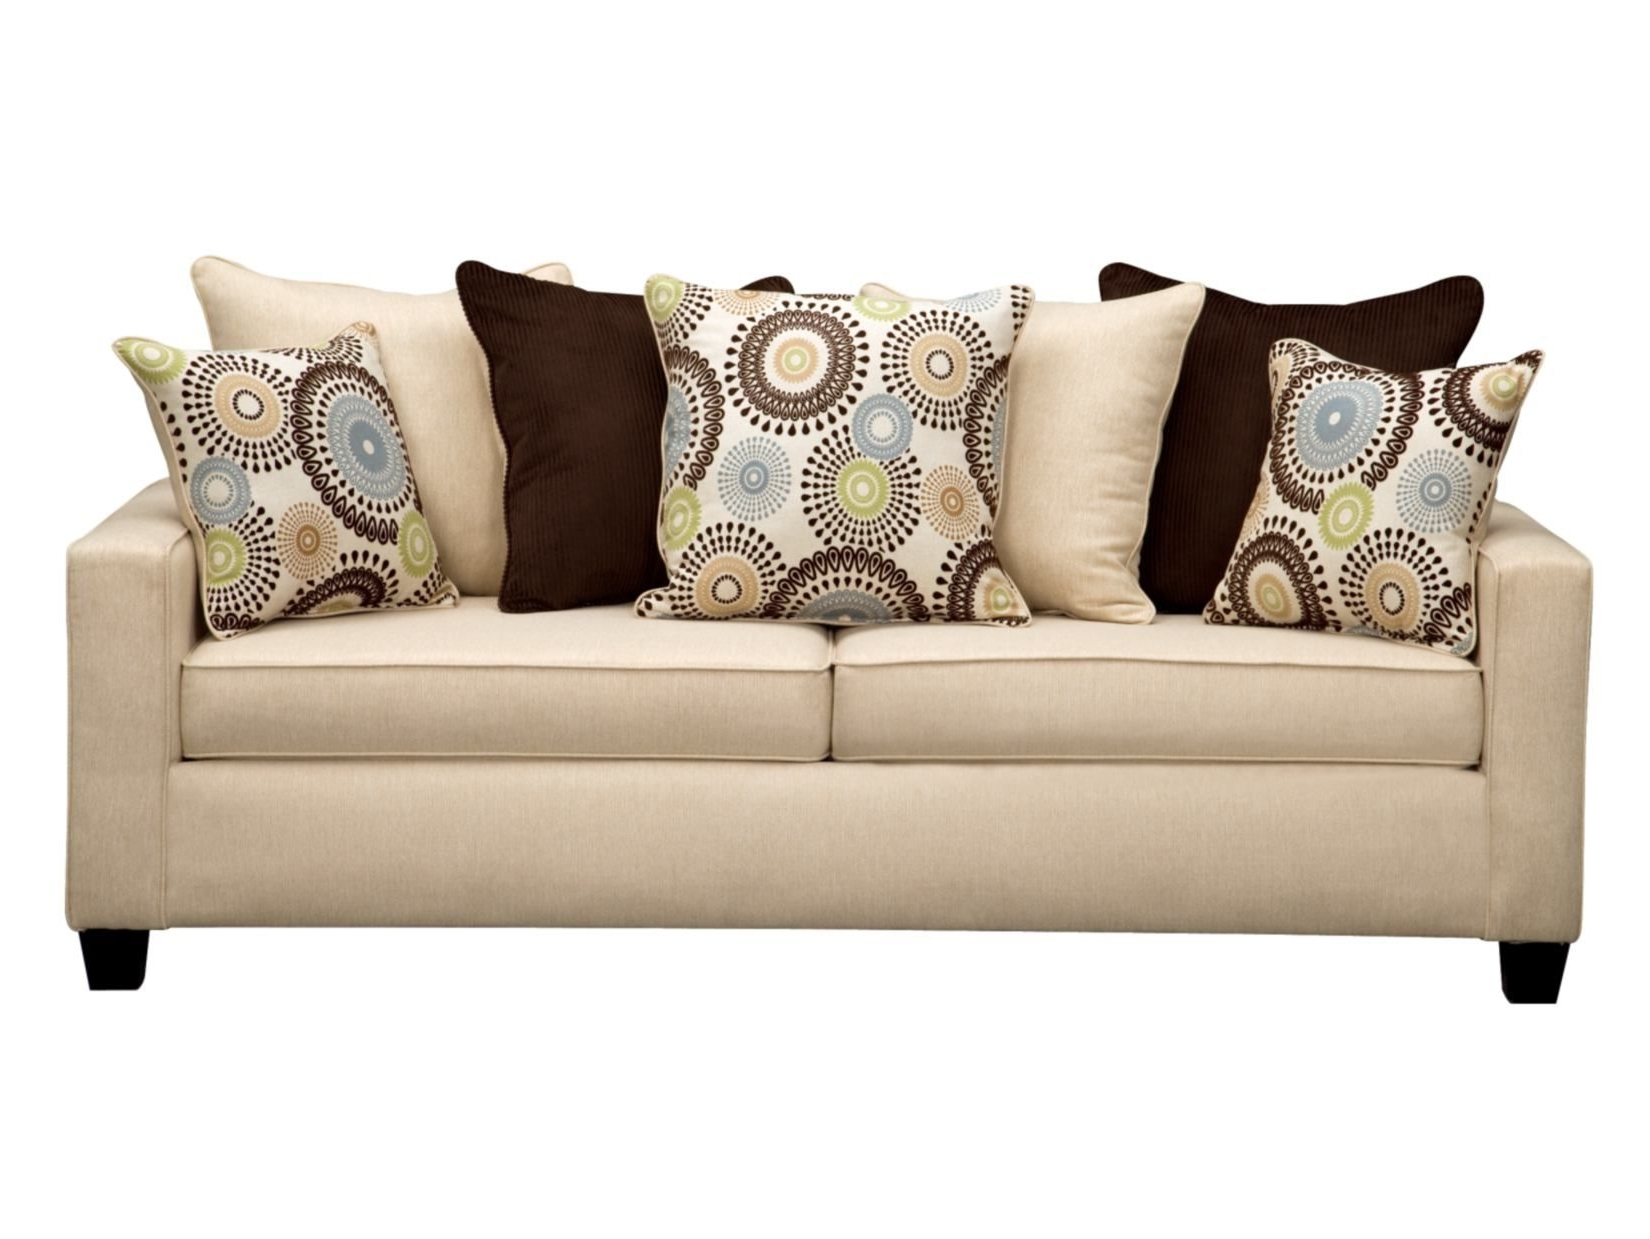 Value City Sofas Throughout 2018 Stoked Cream Sofa – Value City Furniture (View 2 of 15)